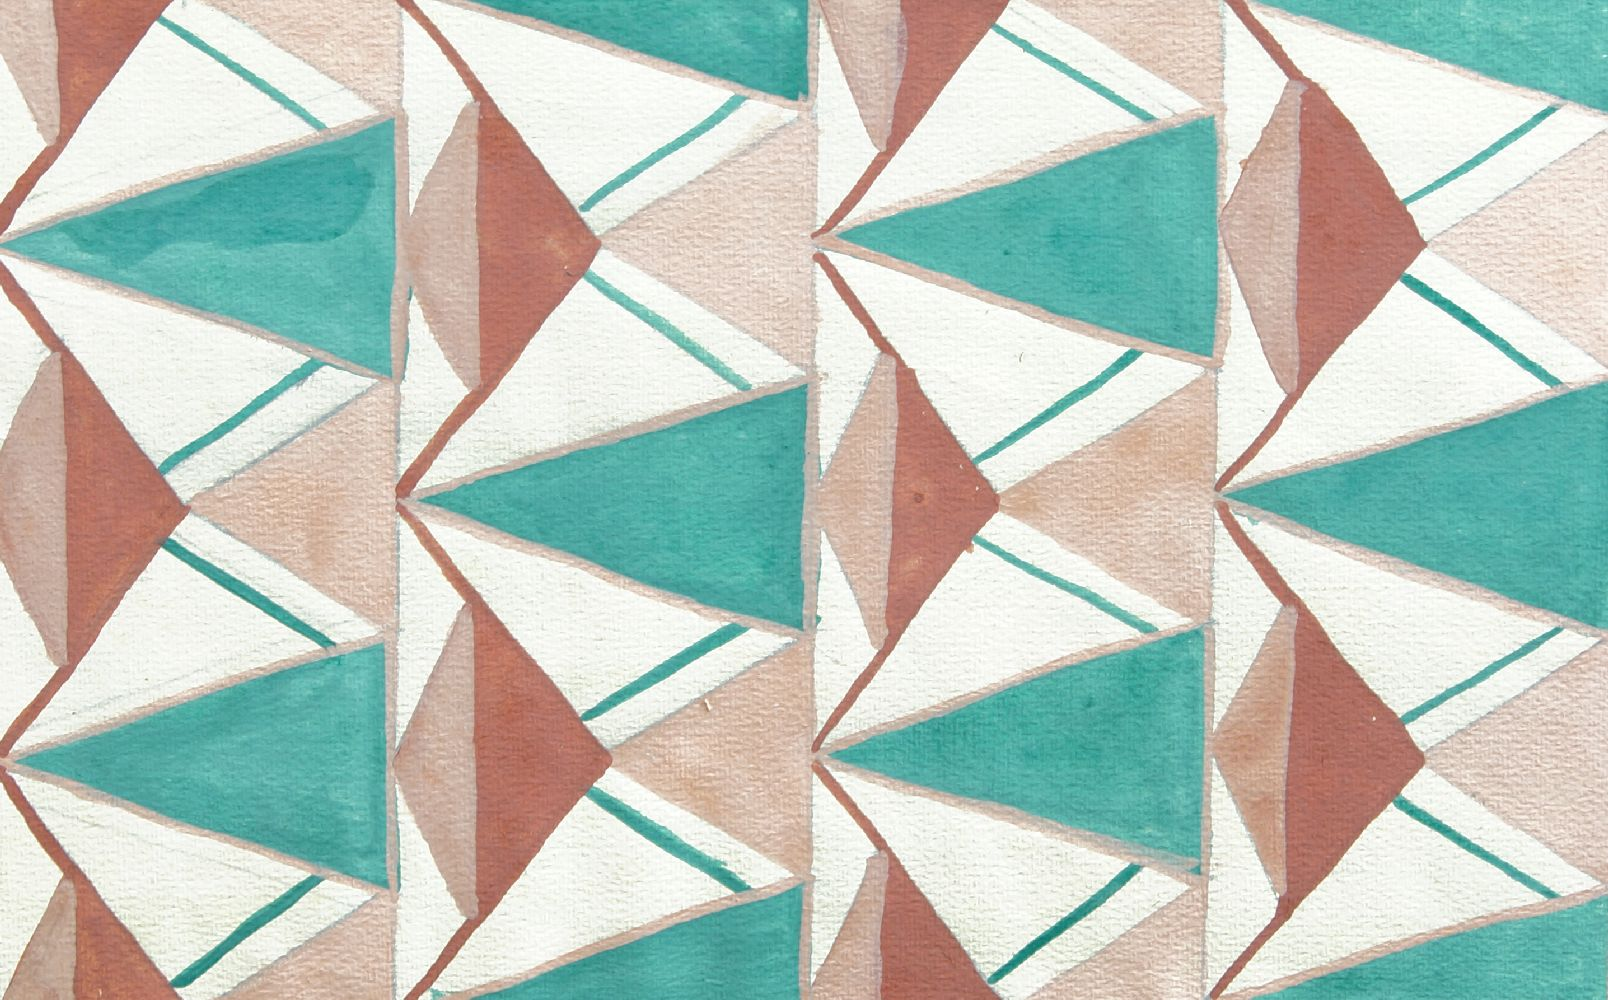 Genevieve Moreau, French School, early 20th century- Untitled abstract patterns; gouache, three, two - Image 3 of 3